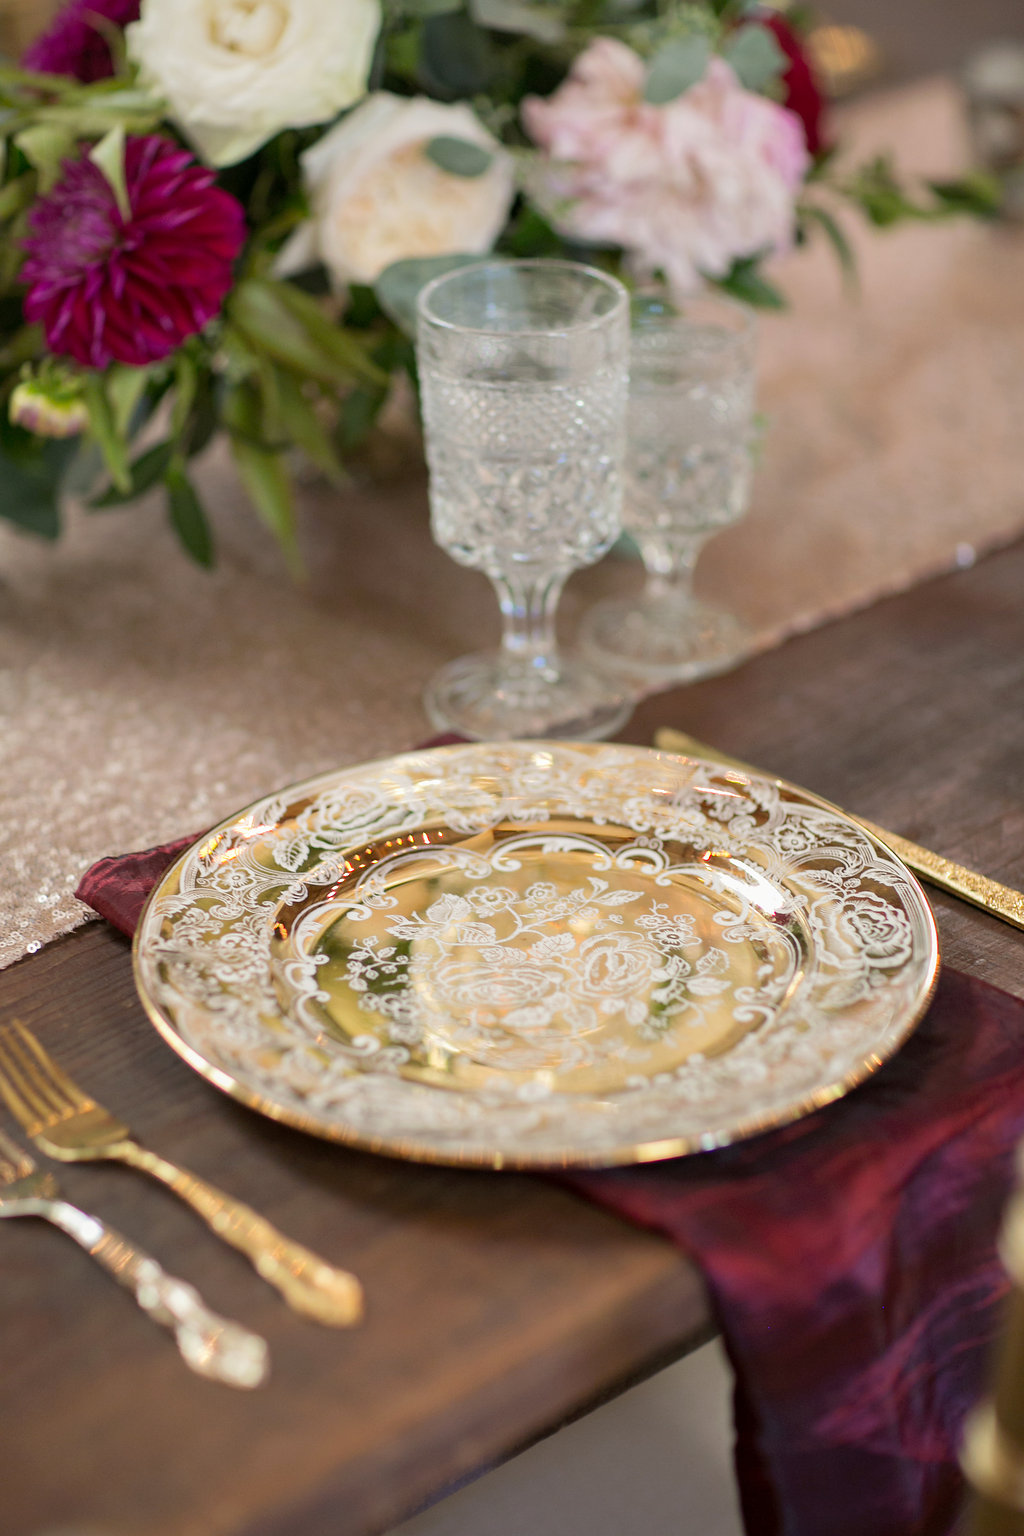 Southern Vintage Gold China Collection